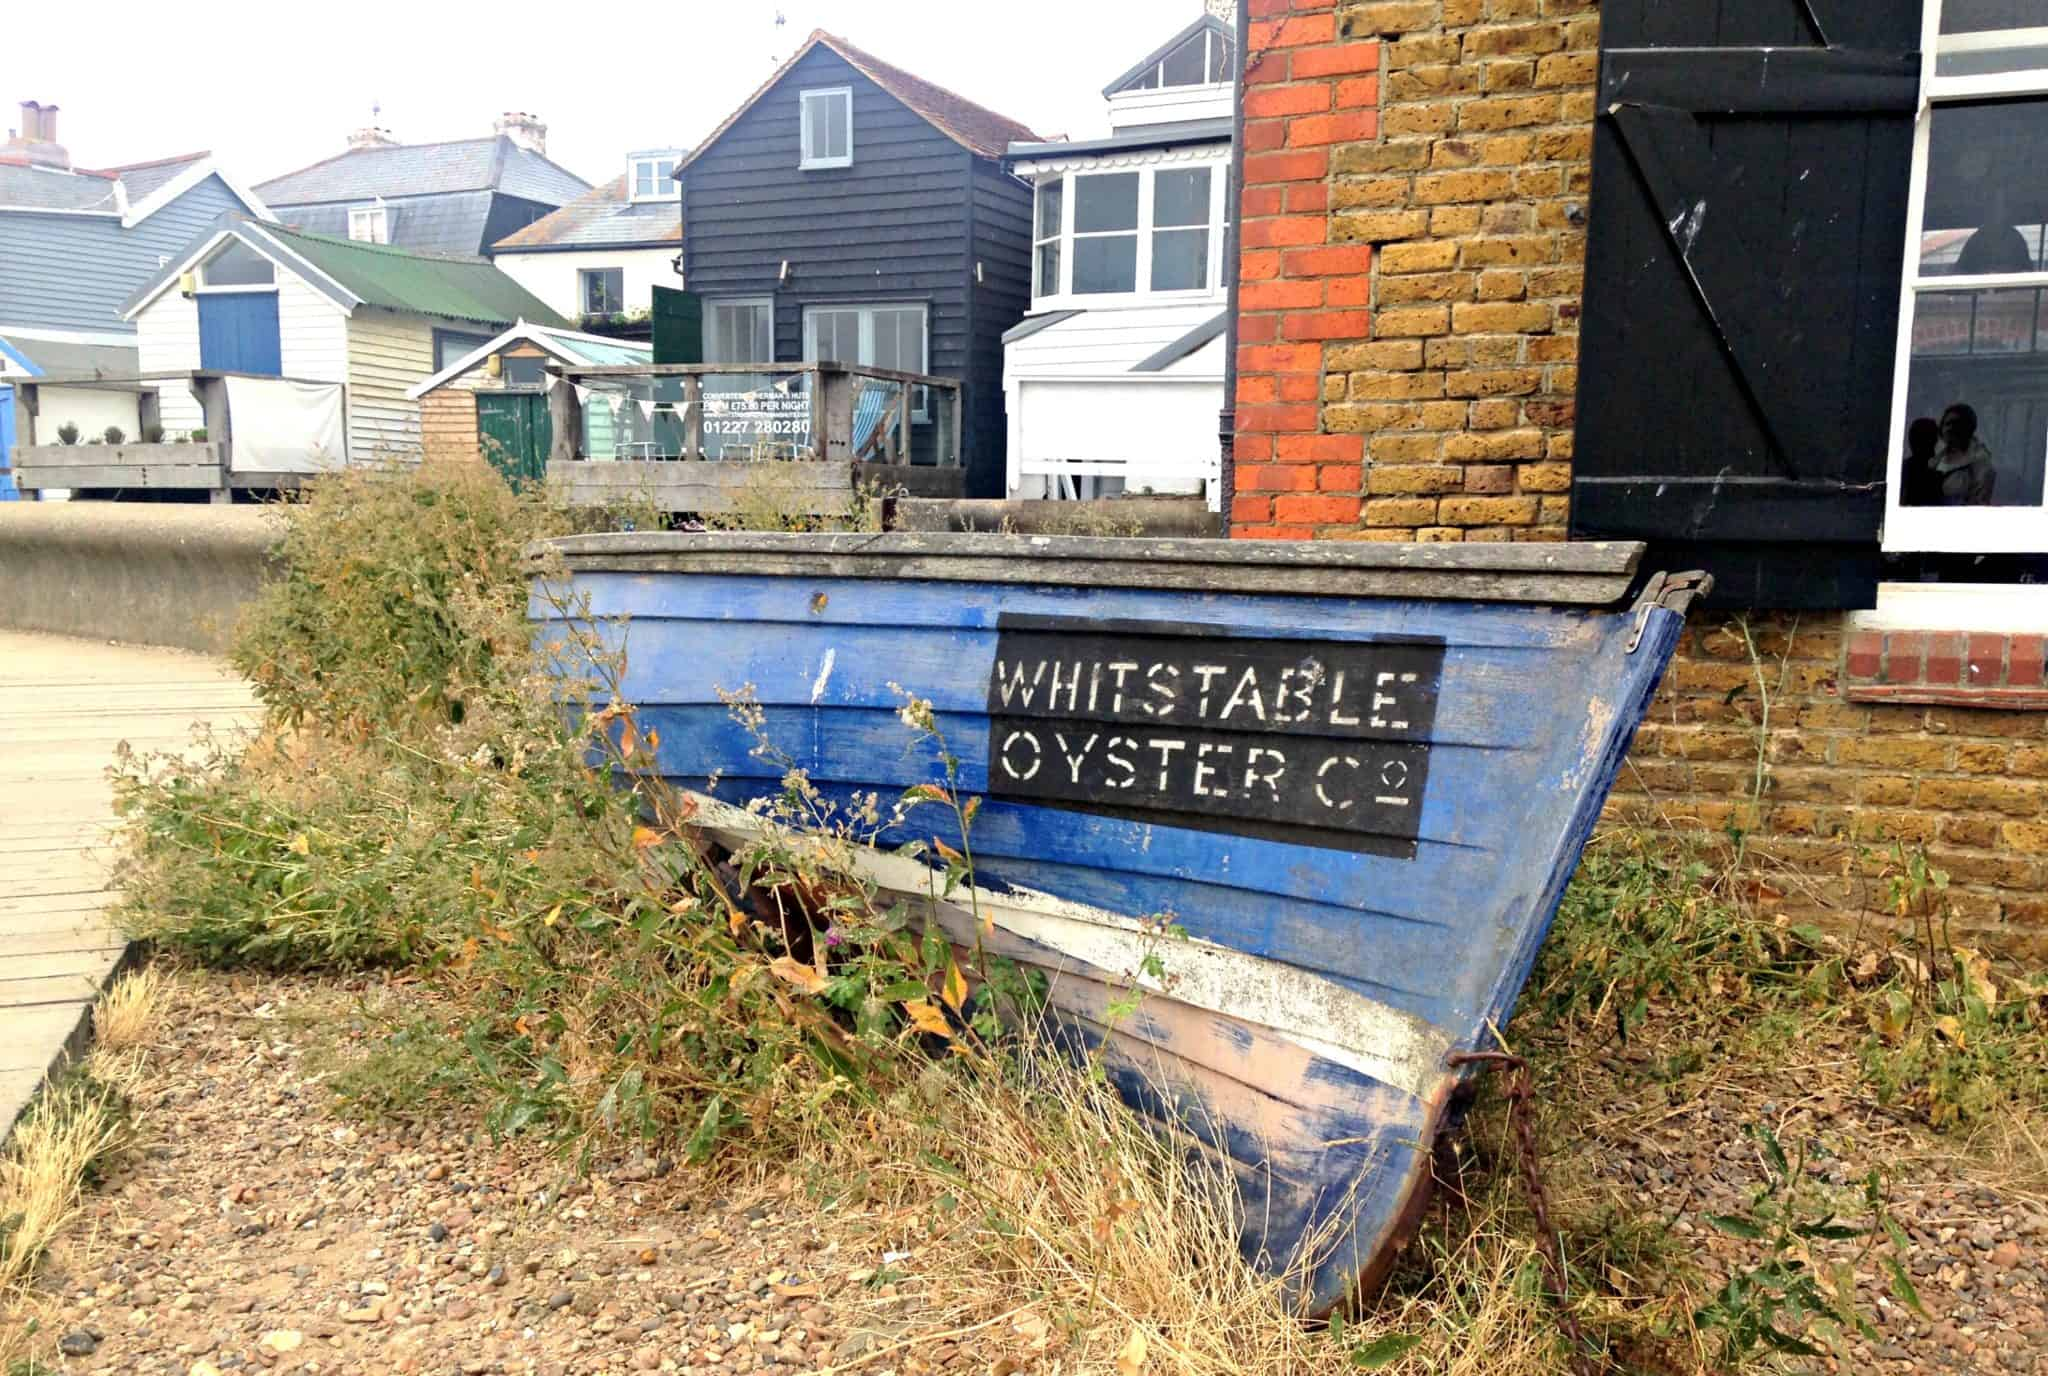 VIsit Whitstable - The Best Things To Do In Whitstable | My Travel Monkey